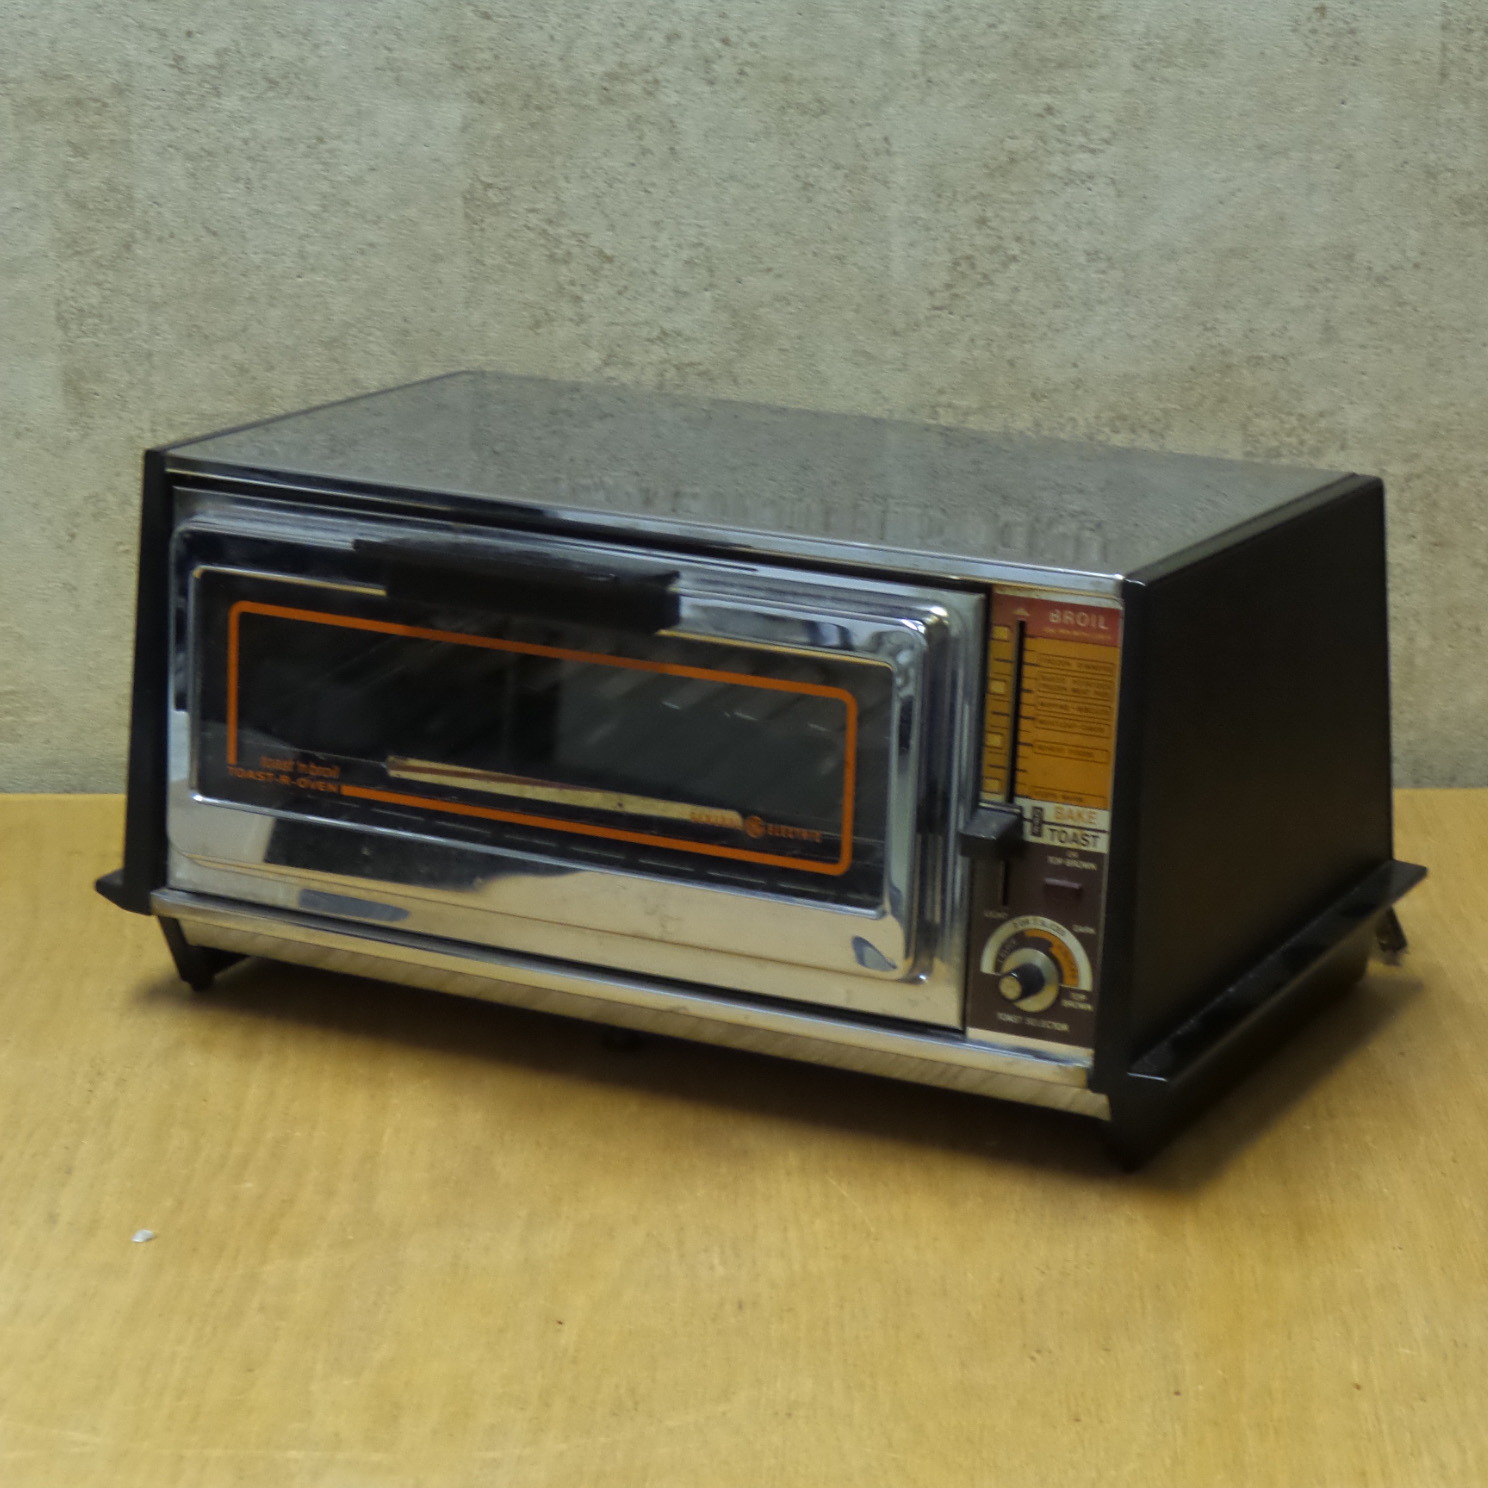 Old Ge Toaster Ovens ~ Vintage general electric toast n broil toaster oven